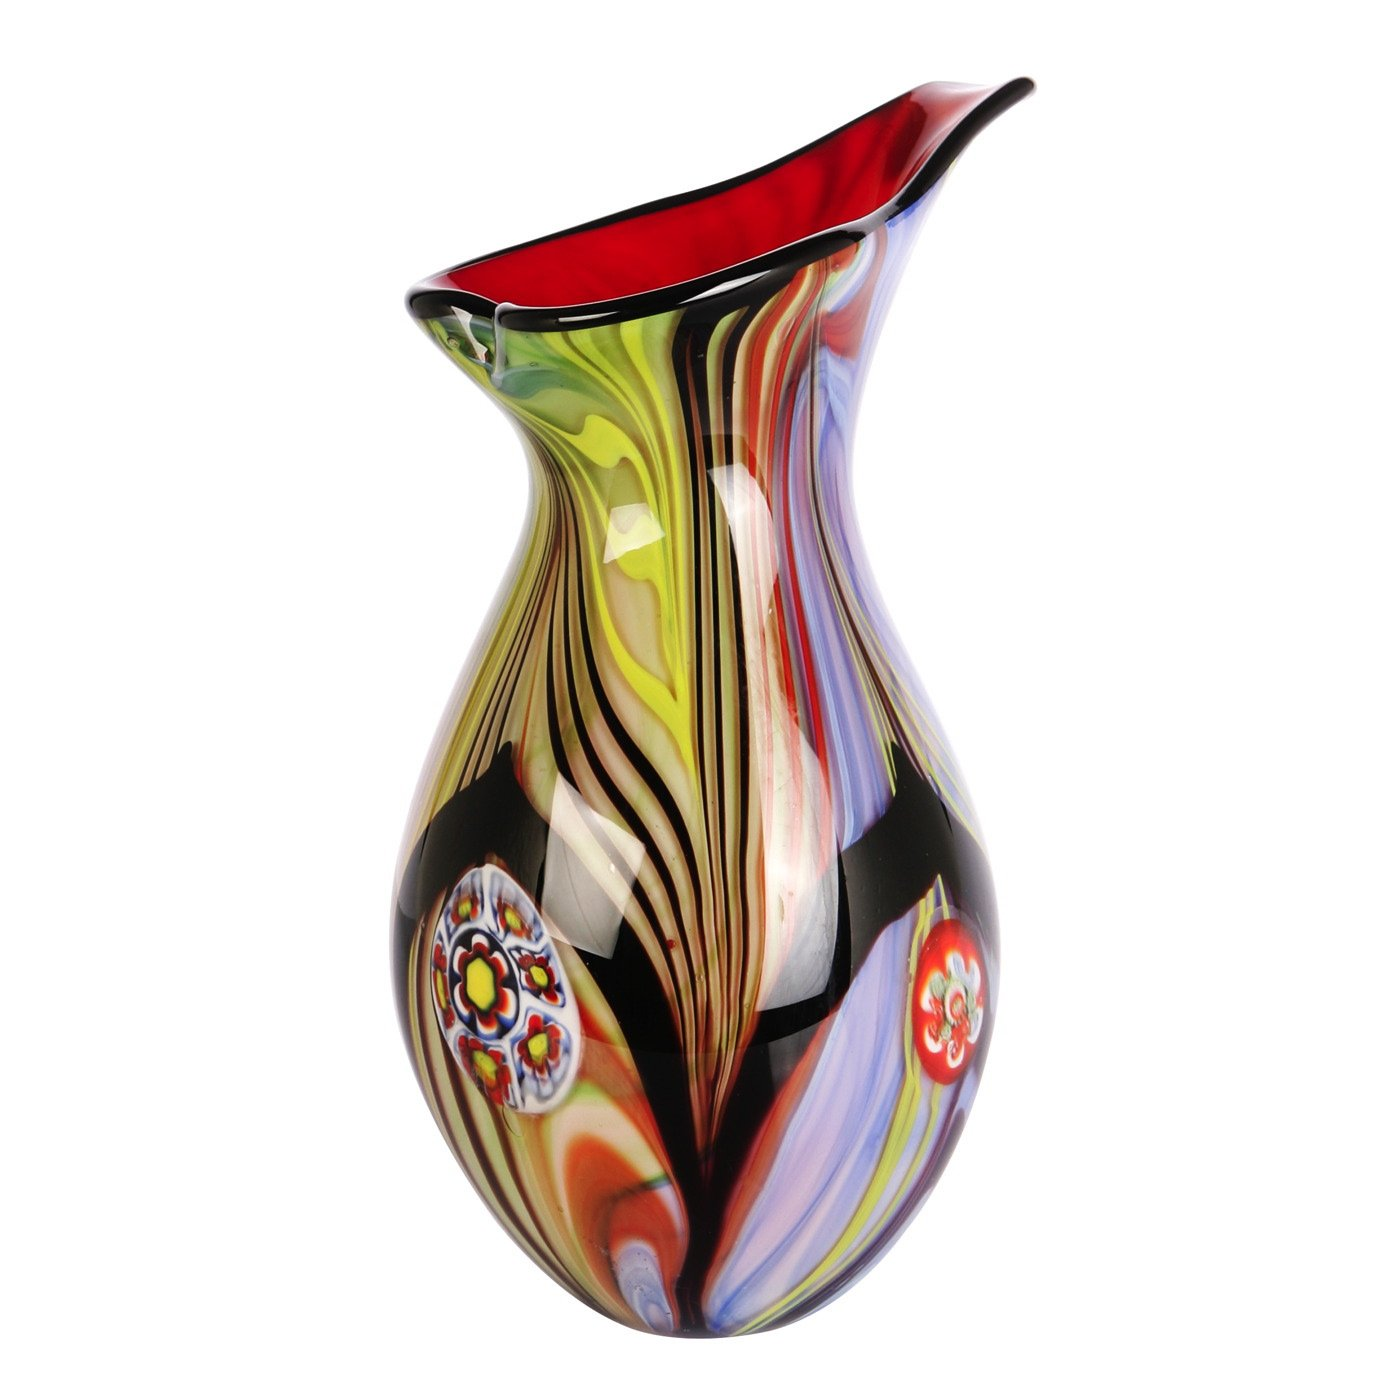 Teardrop Art Glass Vase image